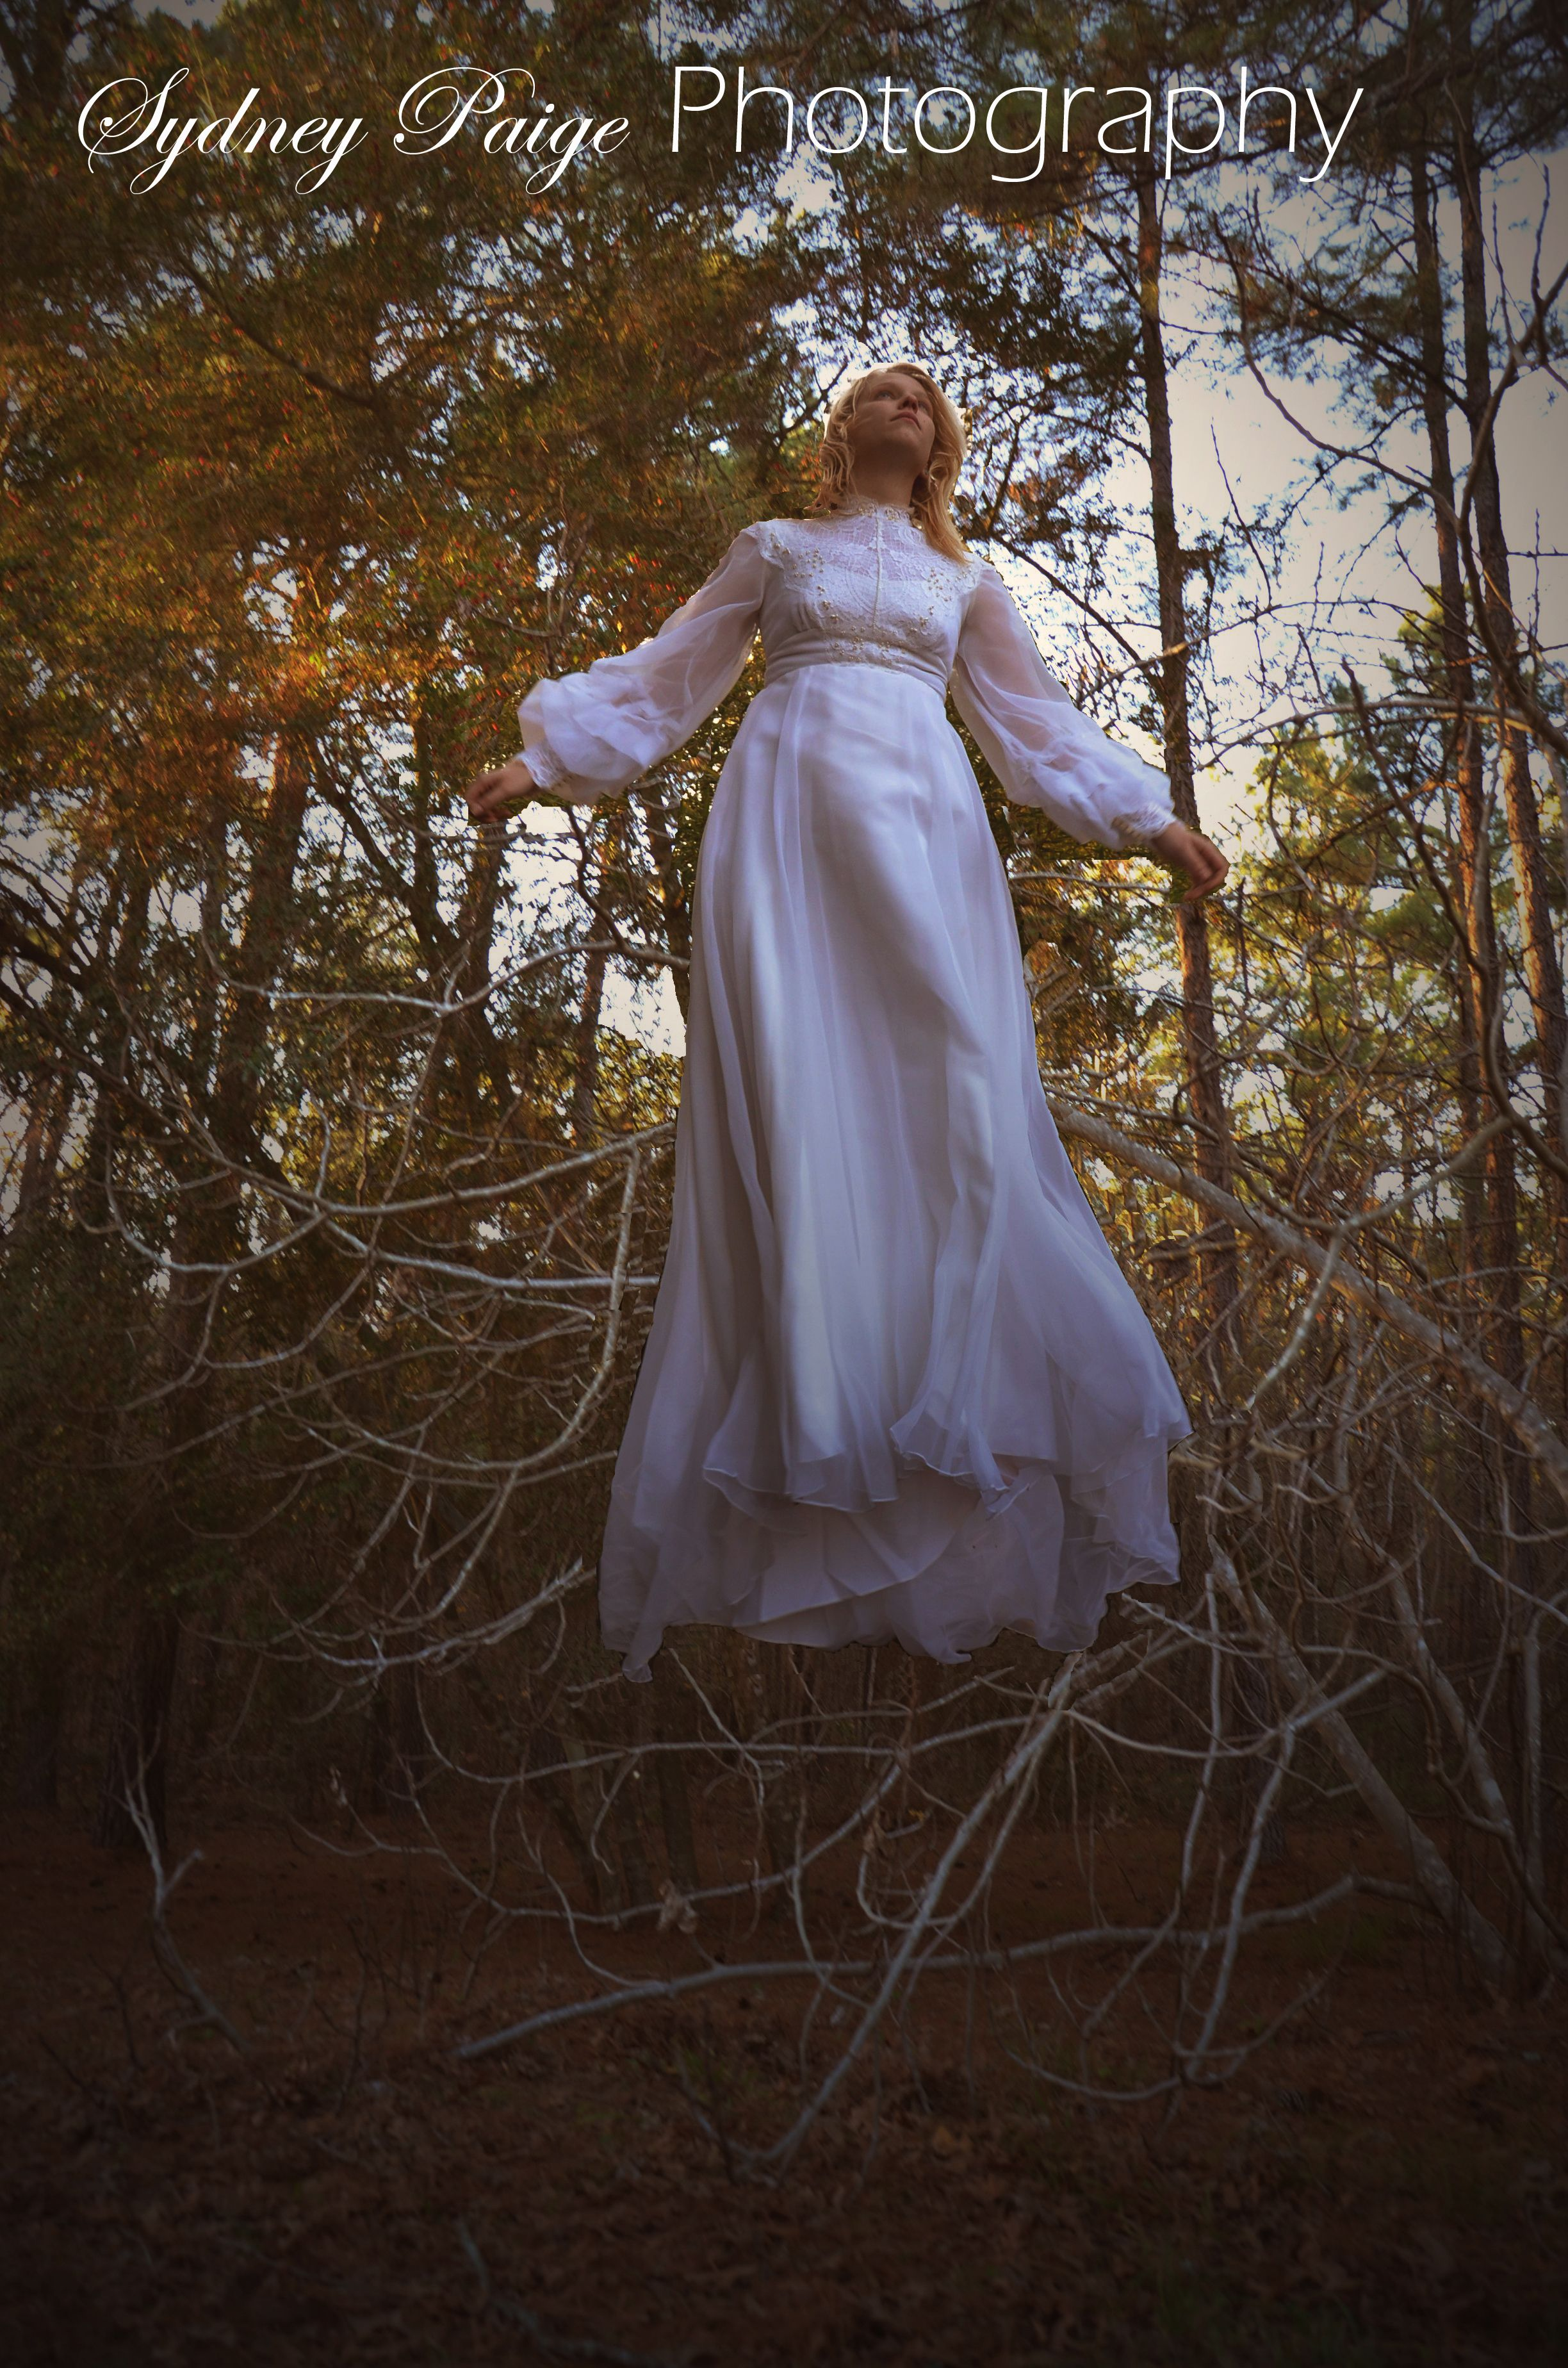 Pin by Sydney PaigePhotography on Fine Art/Fashion SPP